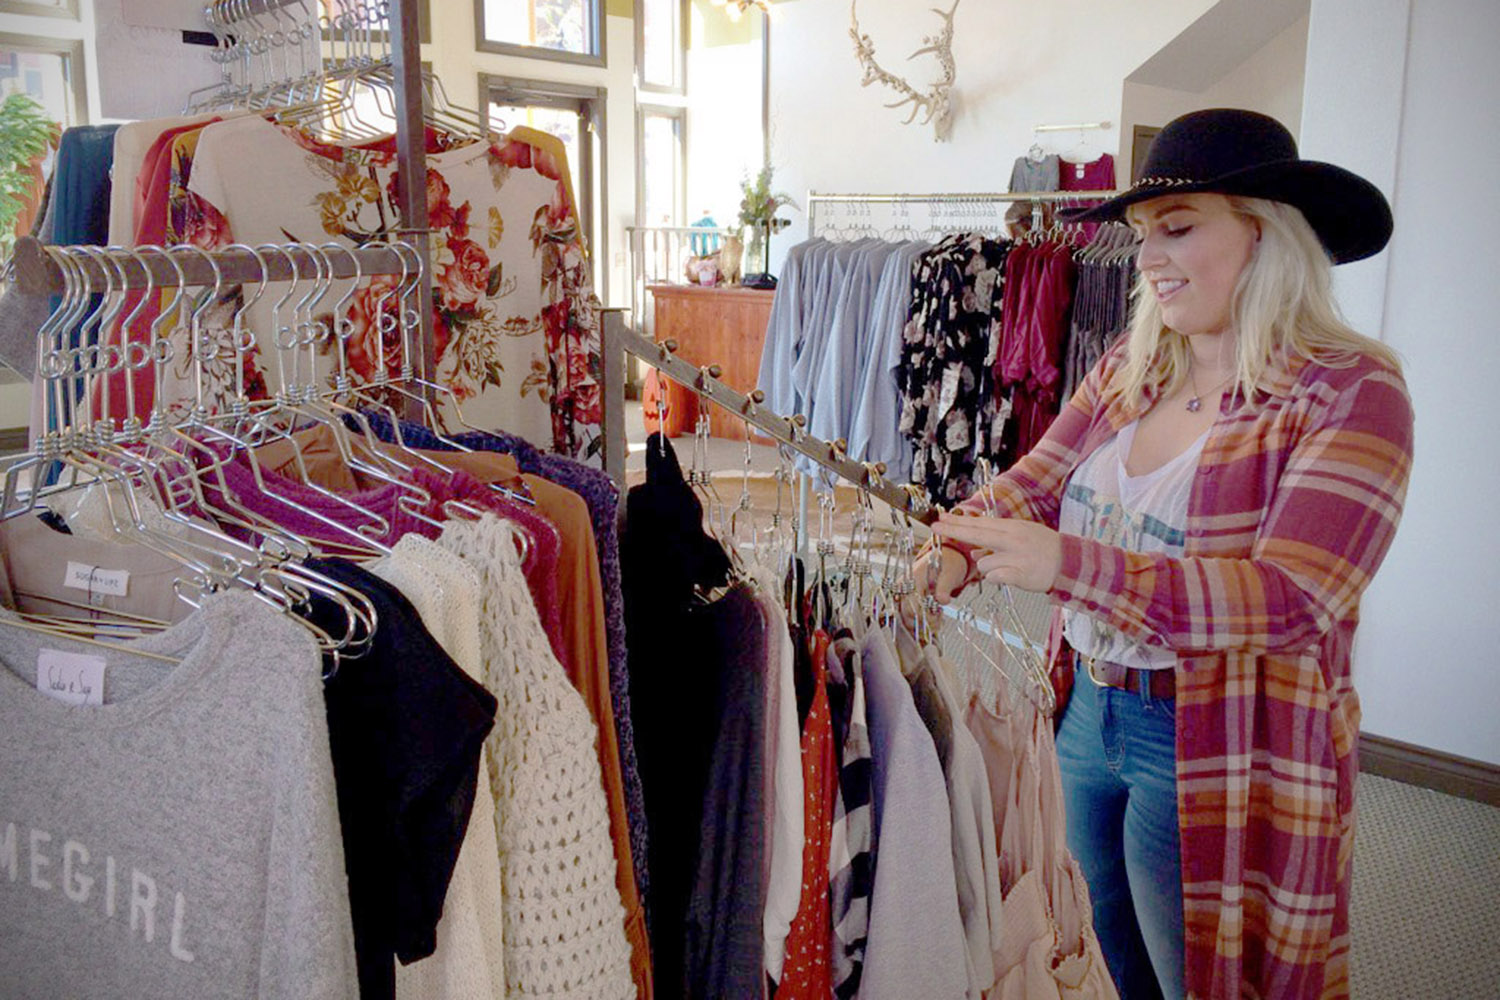 Owner, Cheyenne Frick at Buona Vita Boutique in Illinois